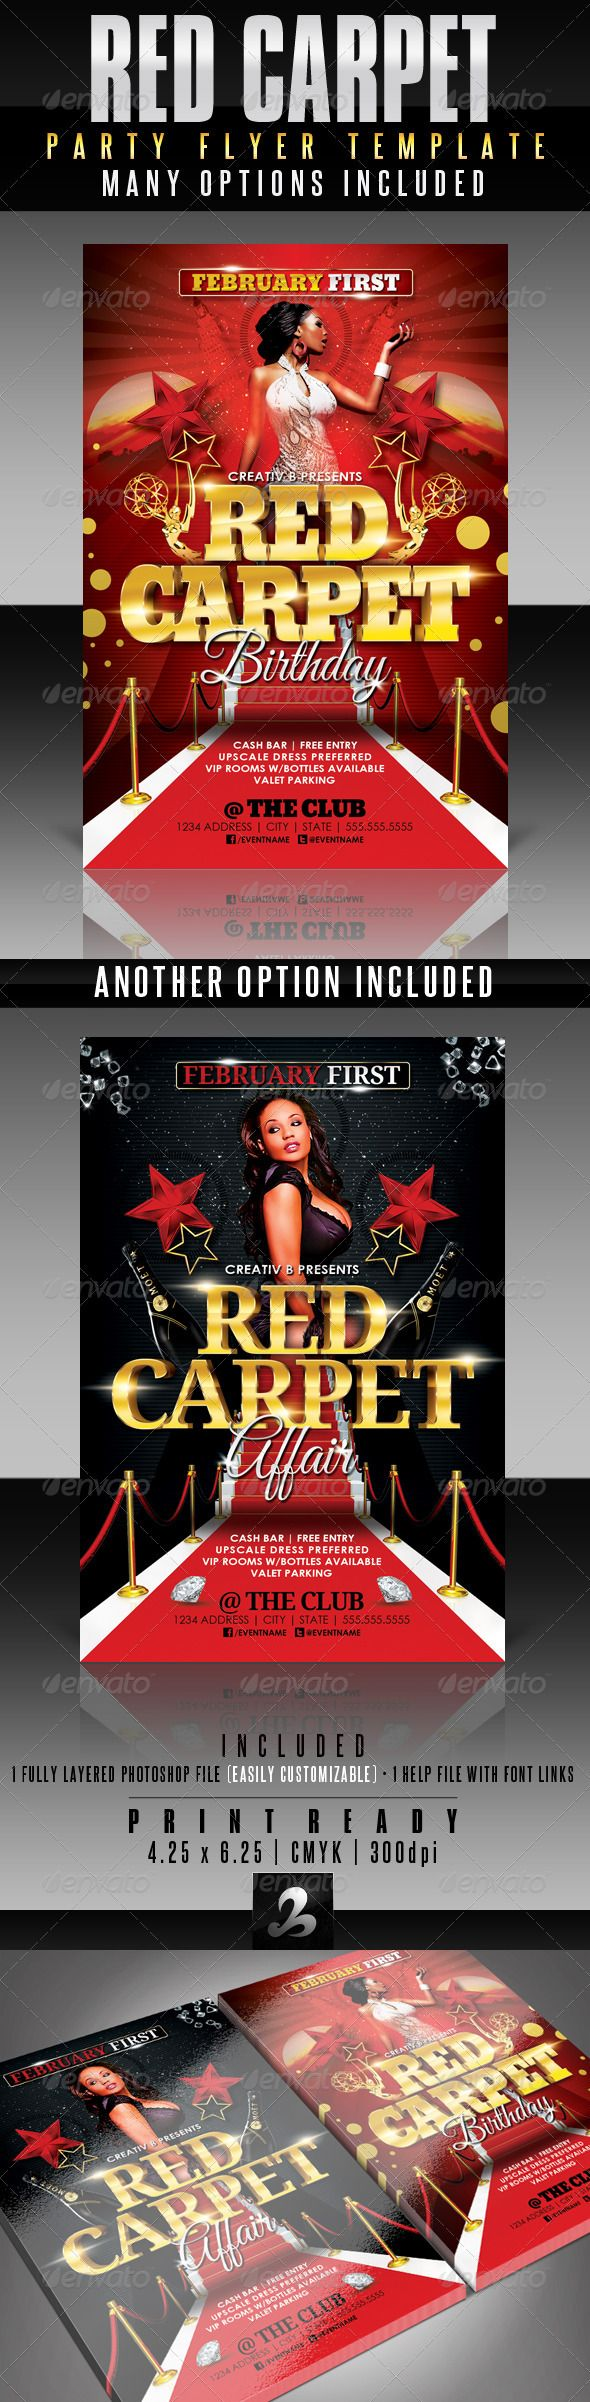 red carpet party flyer template red carpets red carpet party red carpet party flyer template clubs parties events